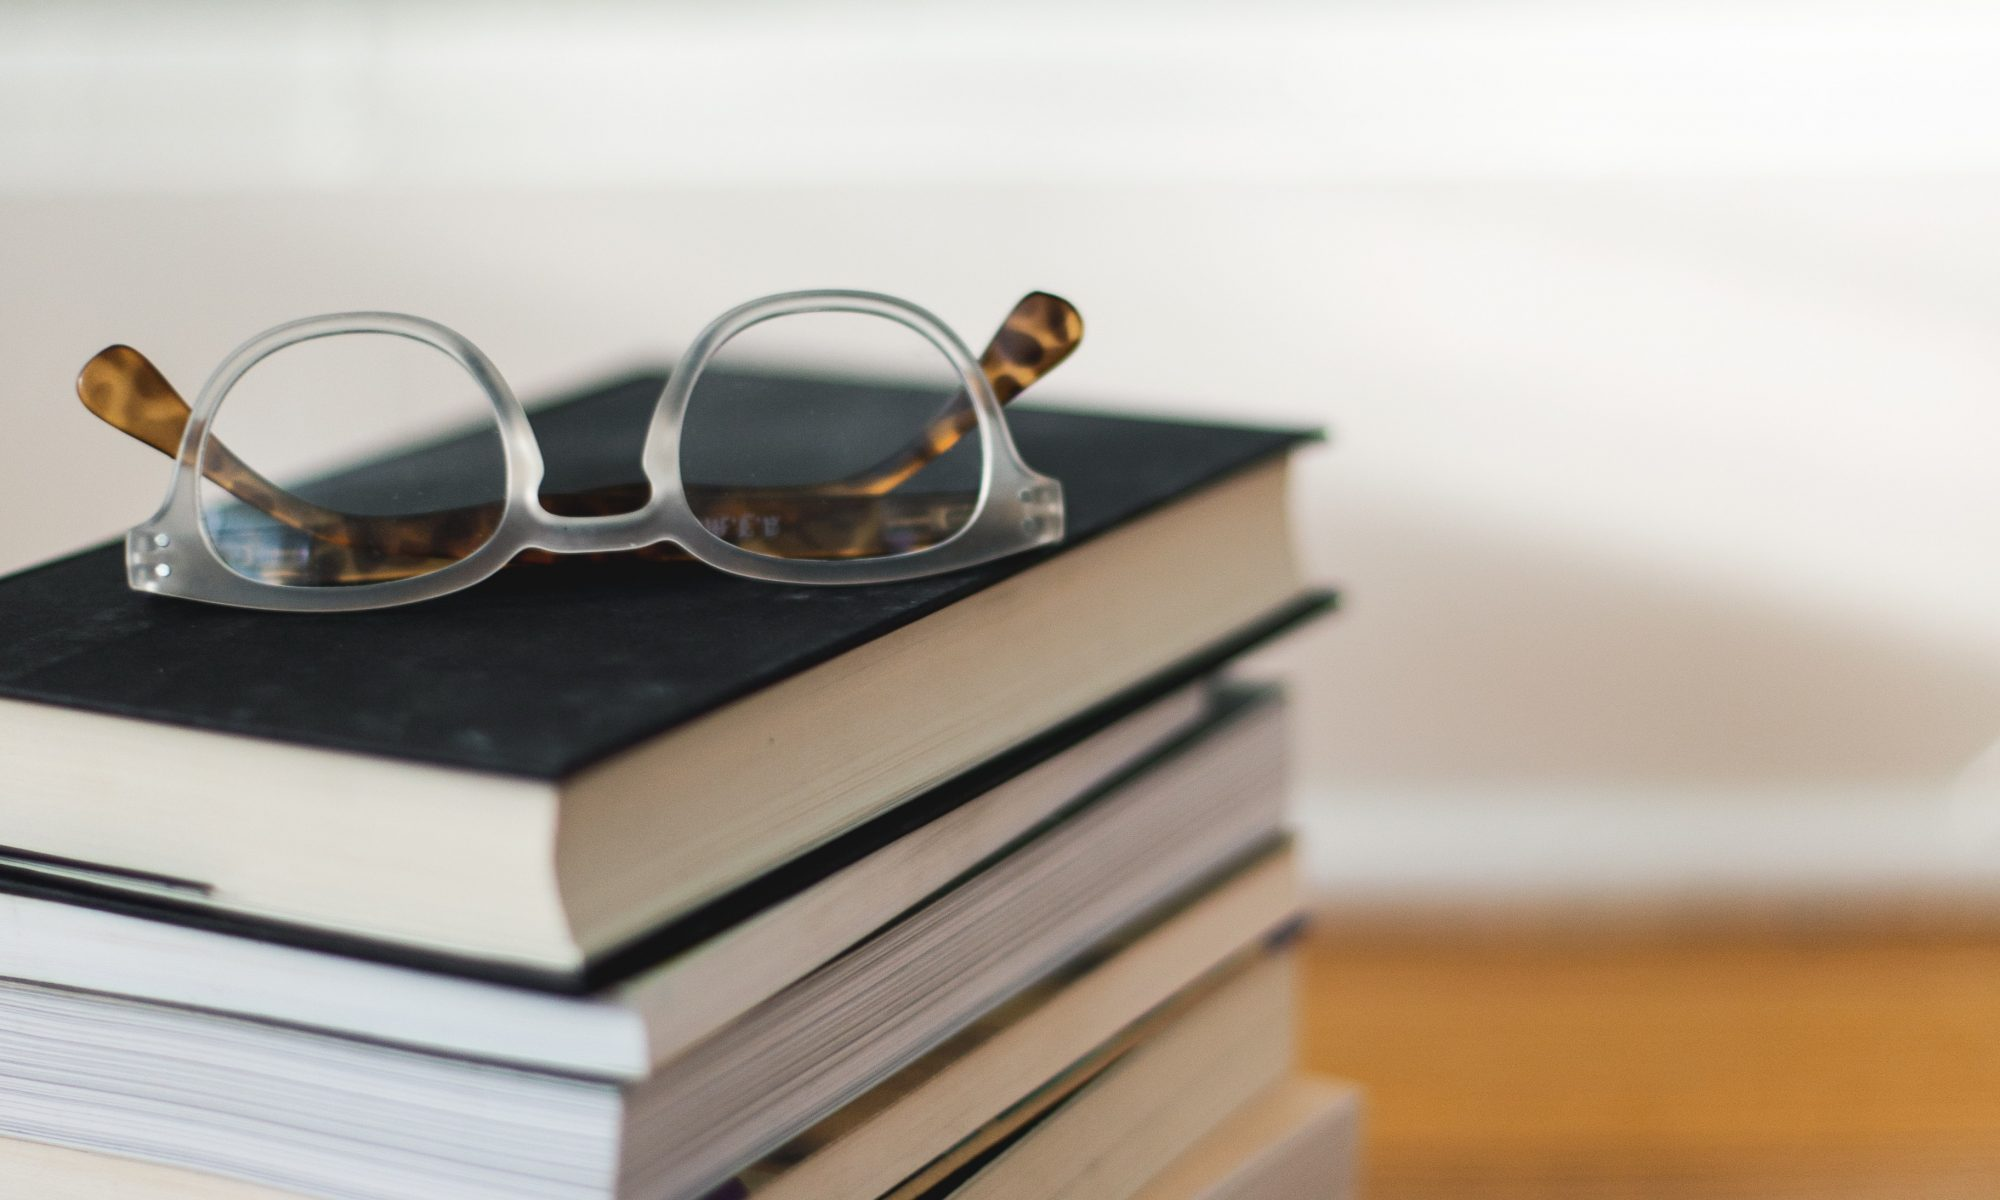 Stack of books with a pair of glasses on top.